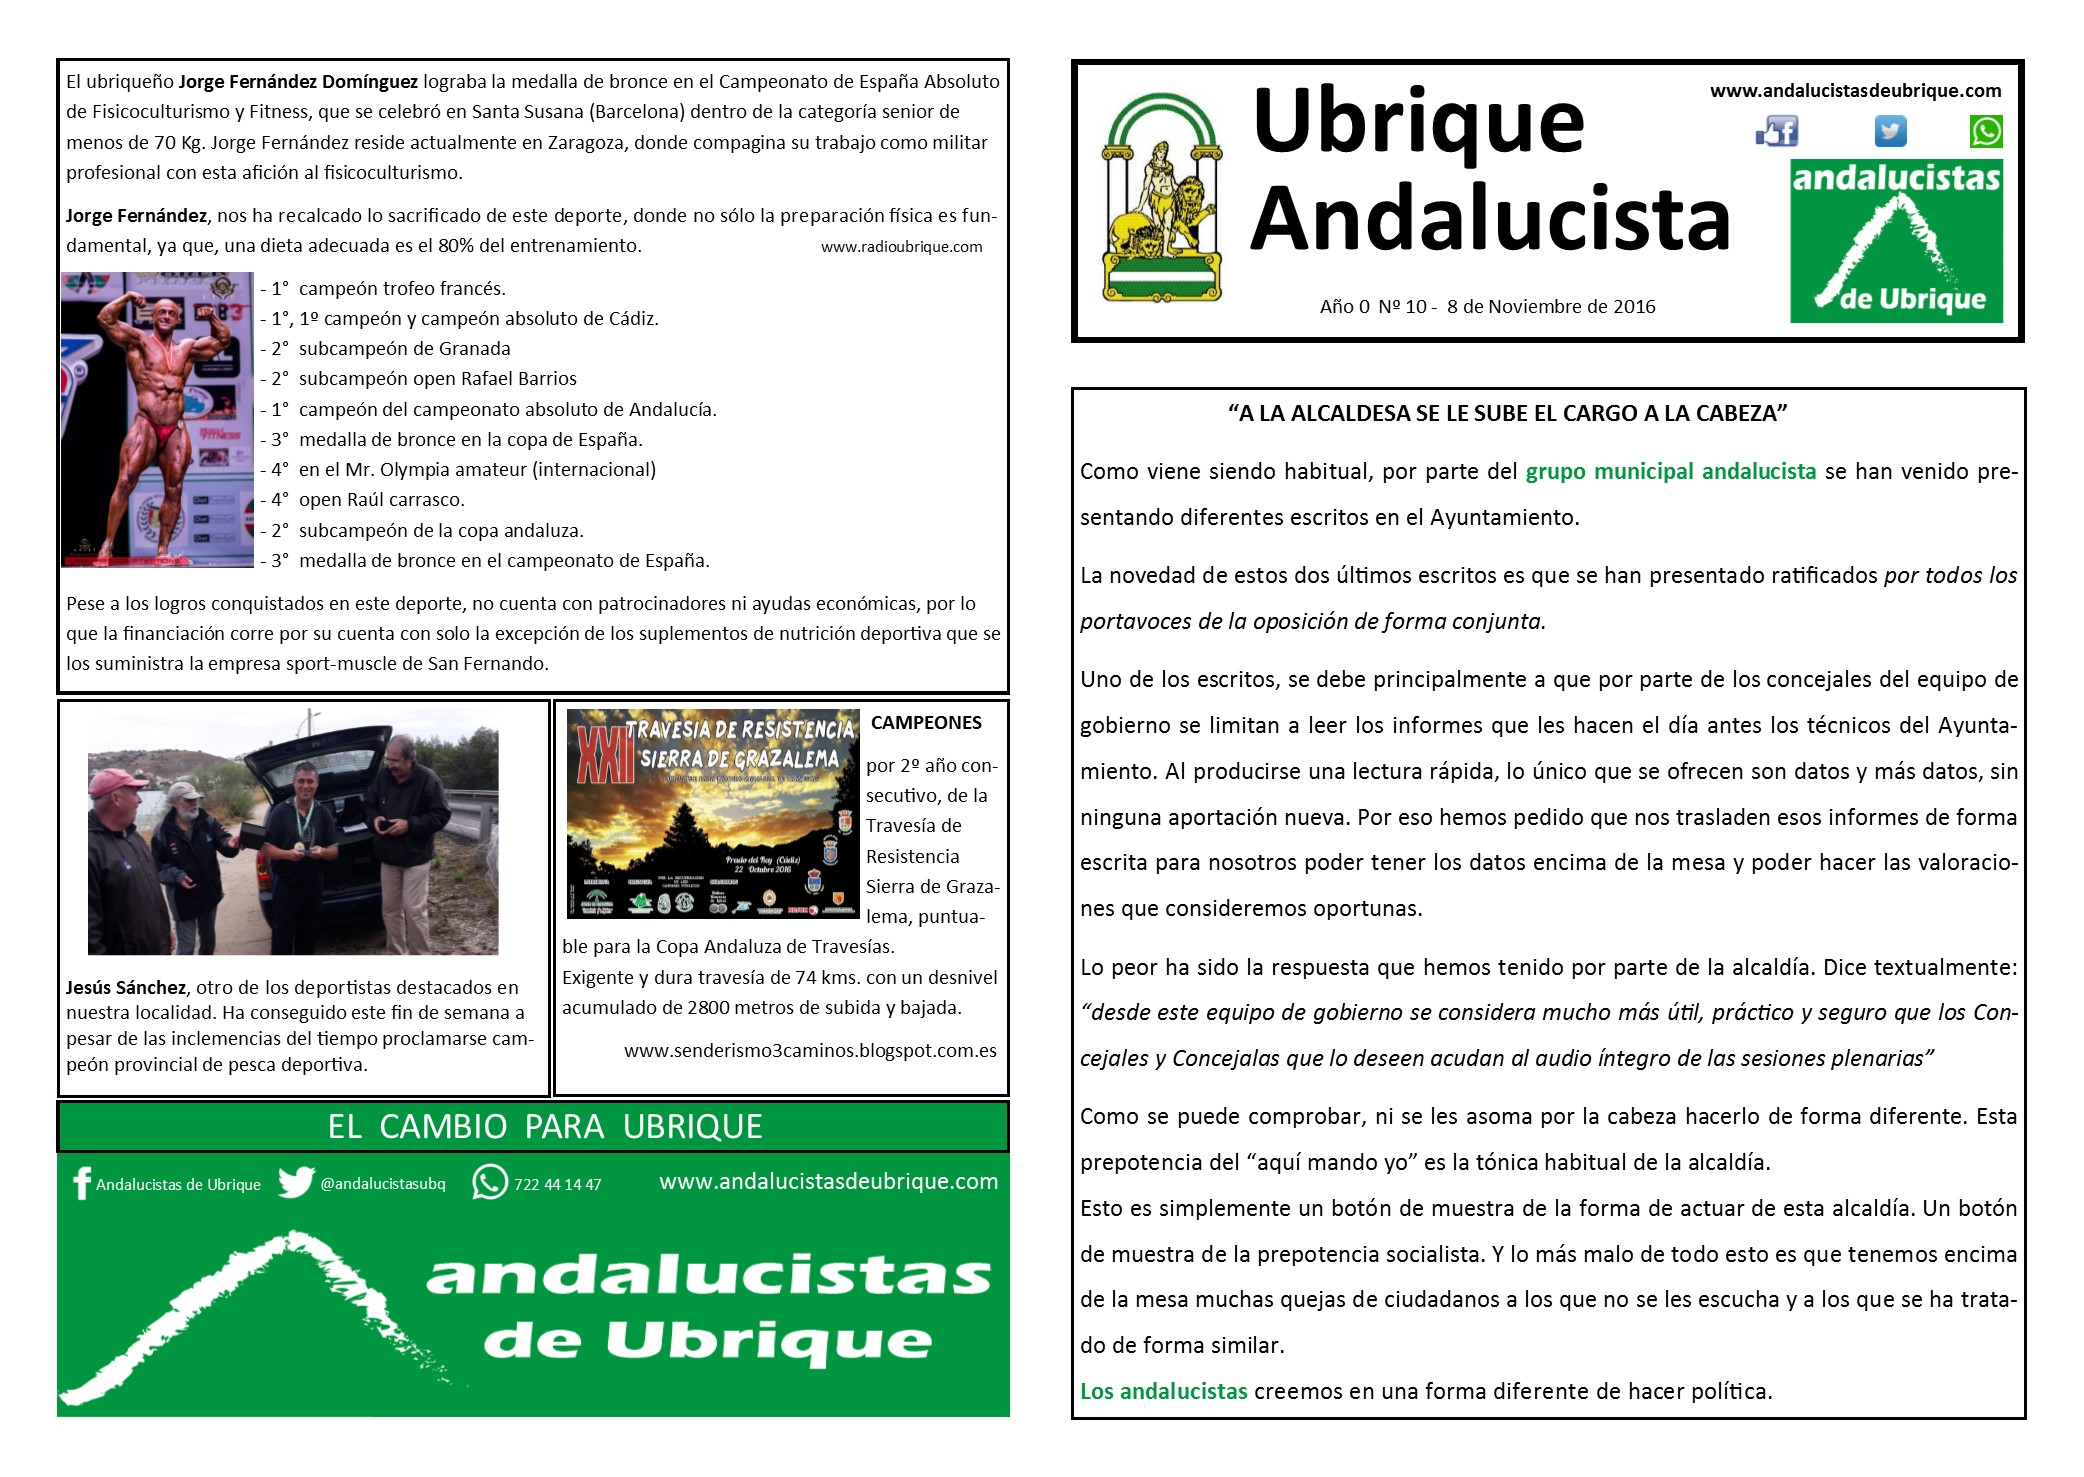 Photo of Boletín Ubrique Andalucista nº 10 (08 Nov. 2016)